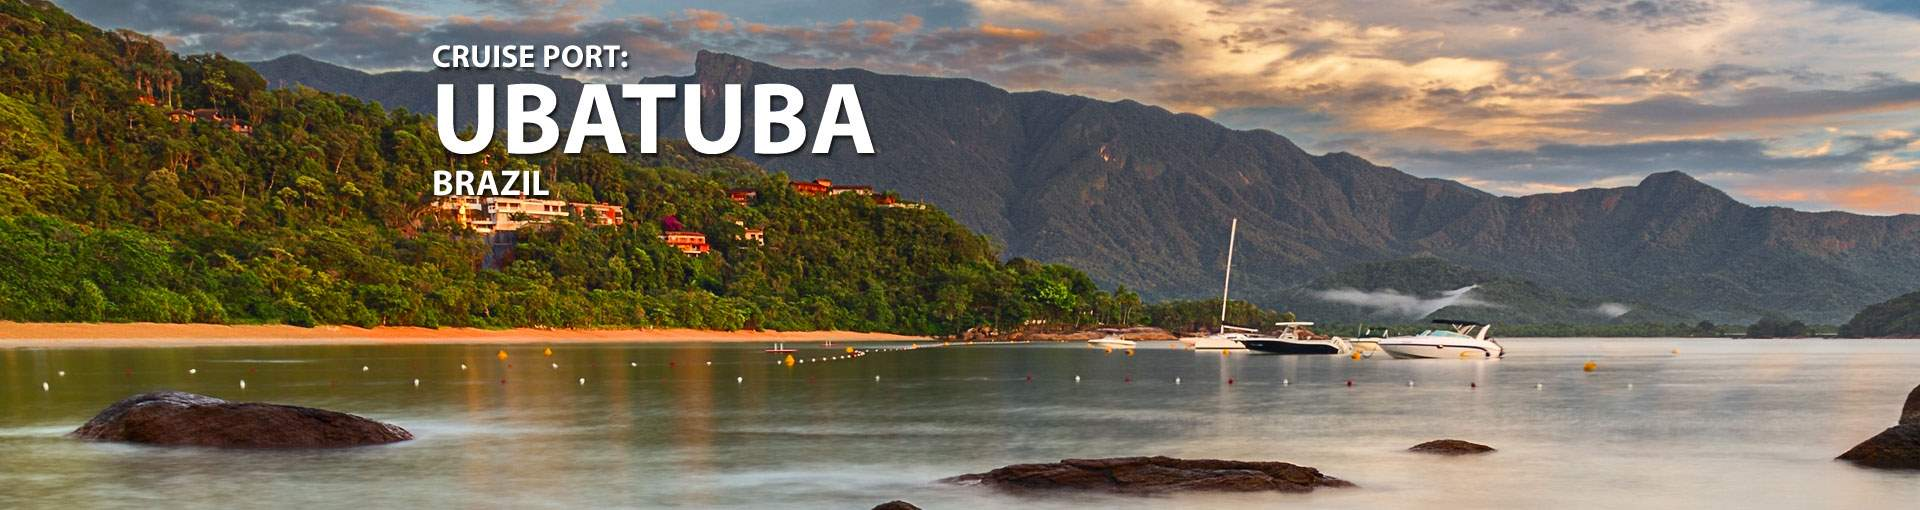 Cruises to Ubatuba, Brazil